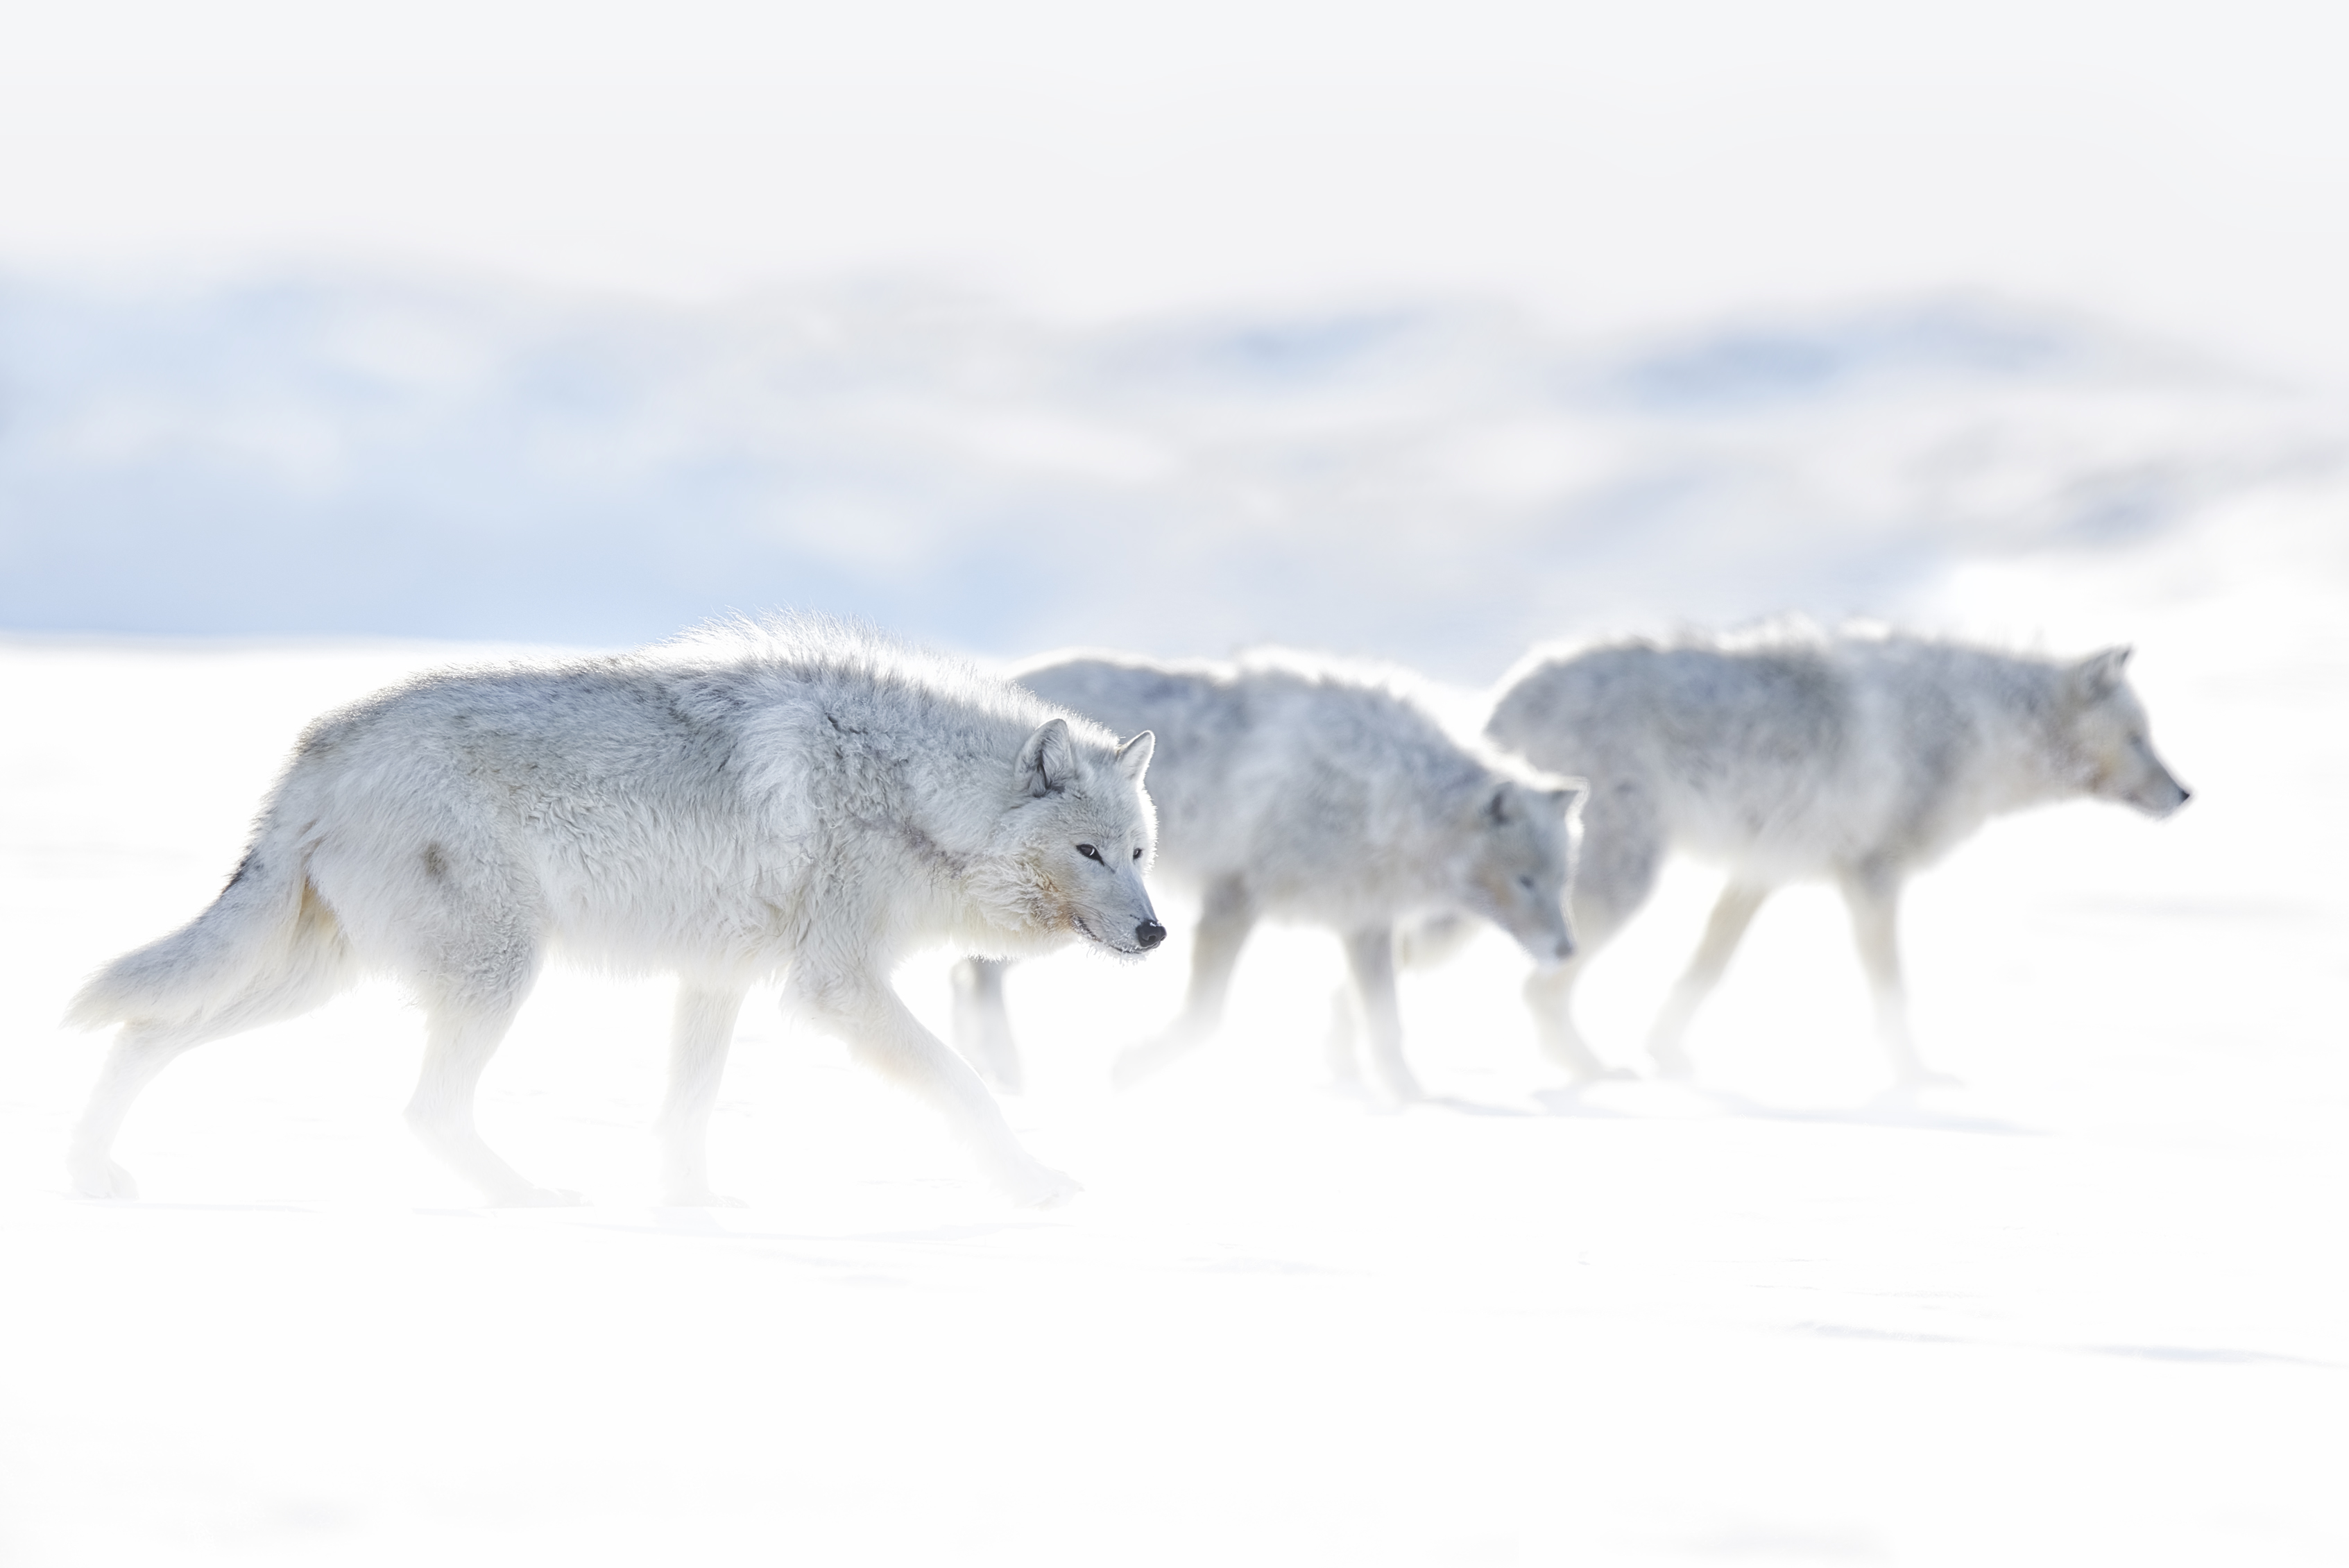 ARCTIC WOLF IMAGES | ACTION SPEAKS LOUDER THAN WORDS by Ejaz Khan